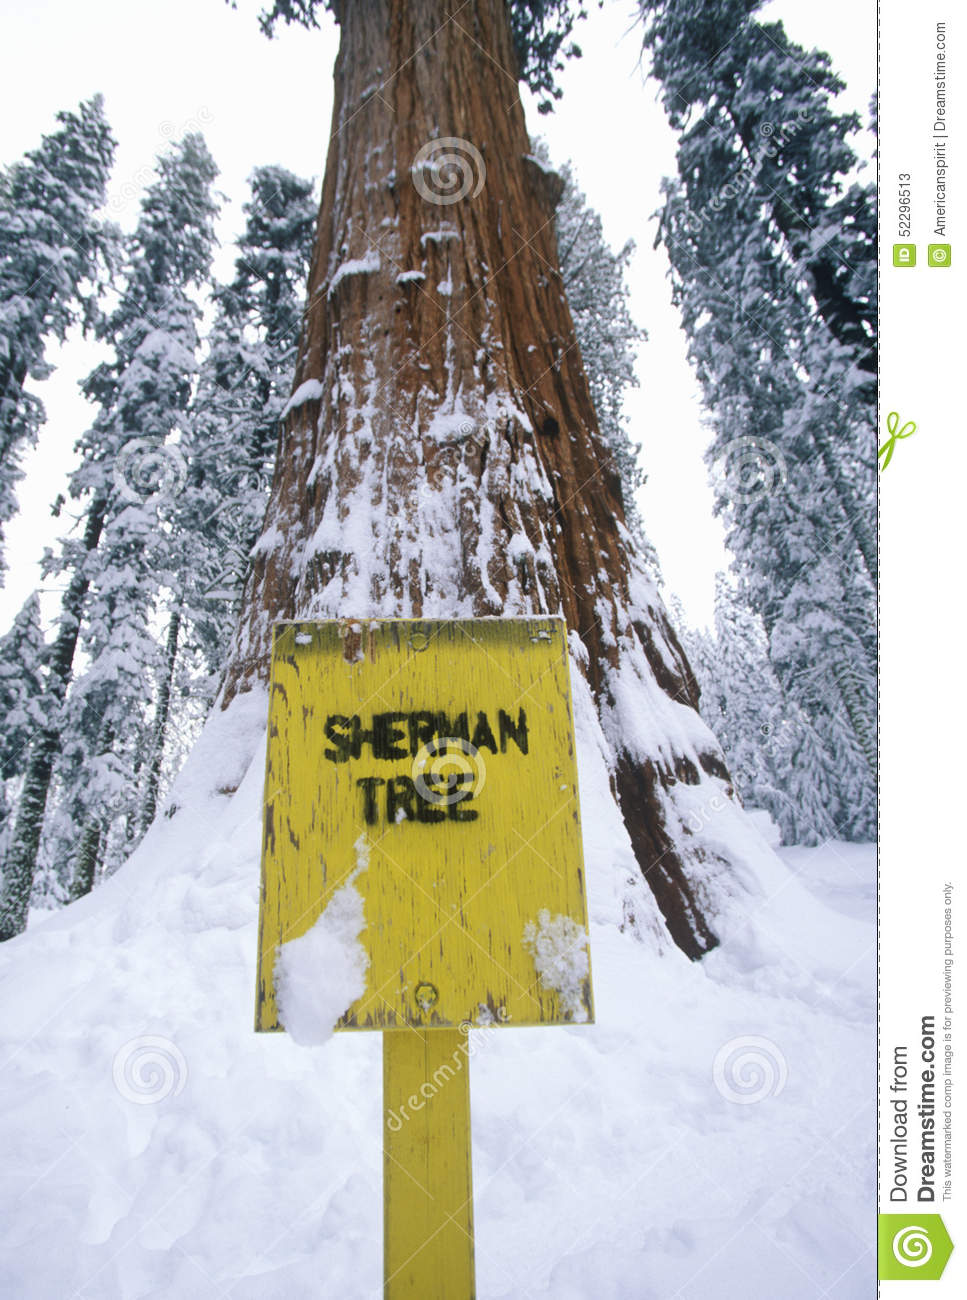 General Sherman Redwood Tree In Winter, Sequoia National Park.